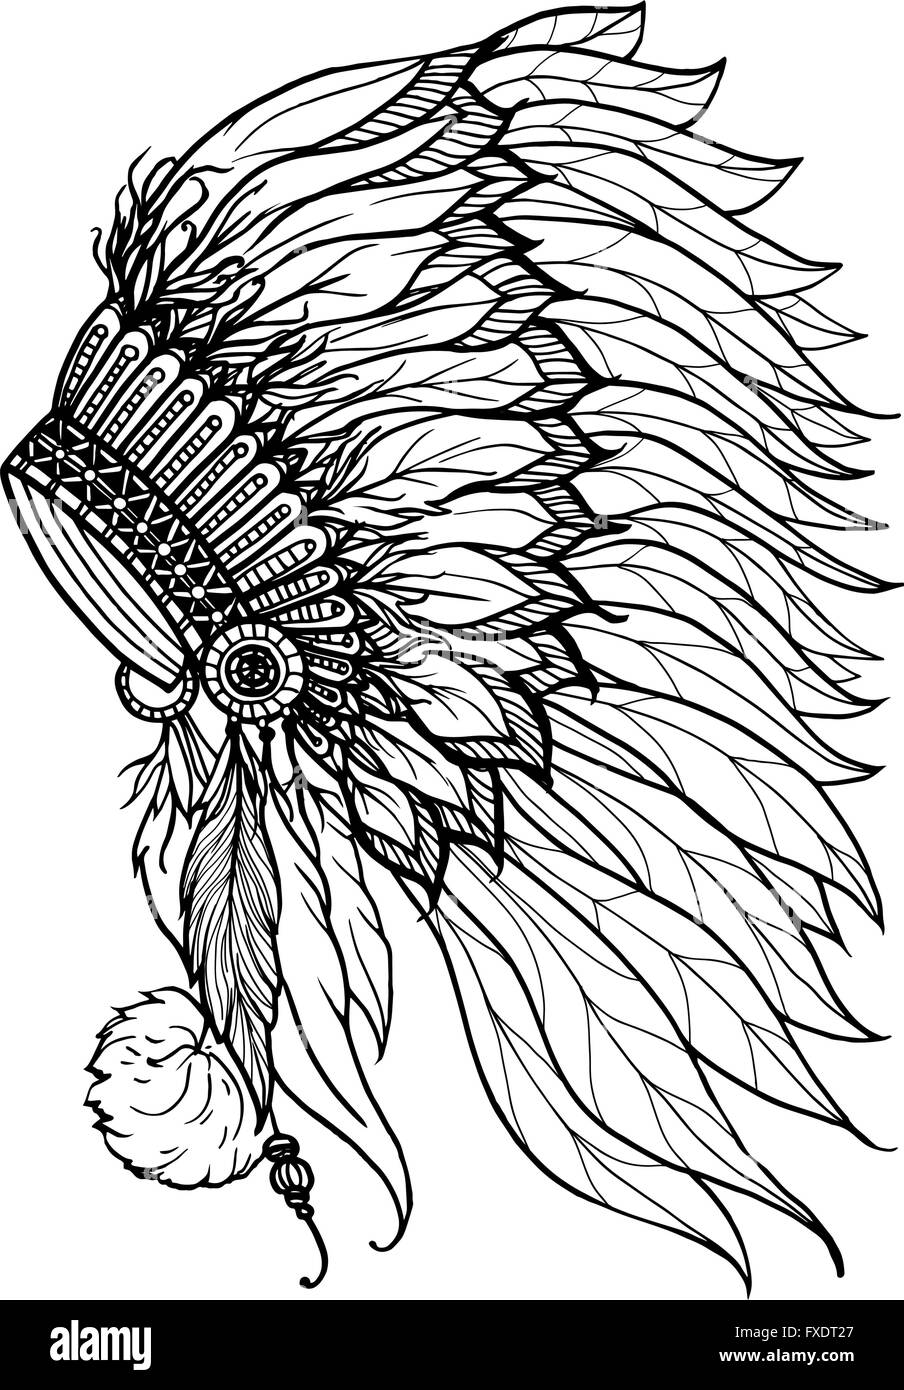 Doodle Headdress For Indian Chief - Stock Image